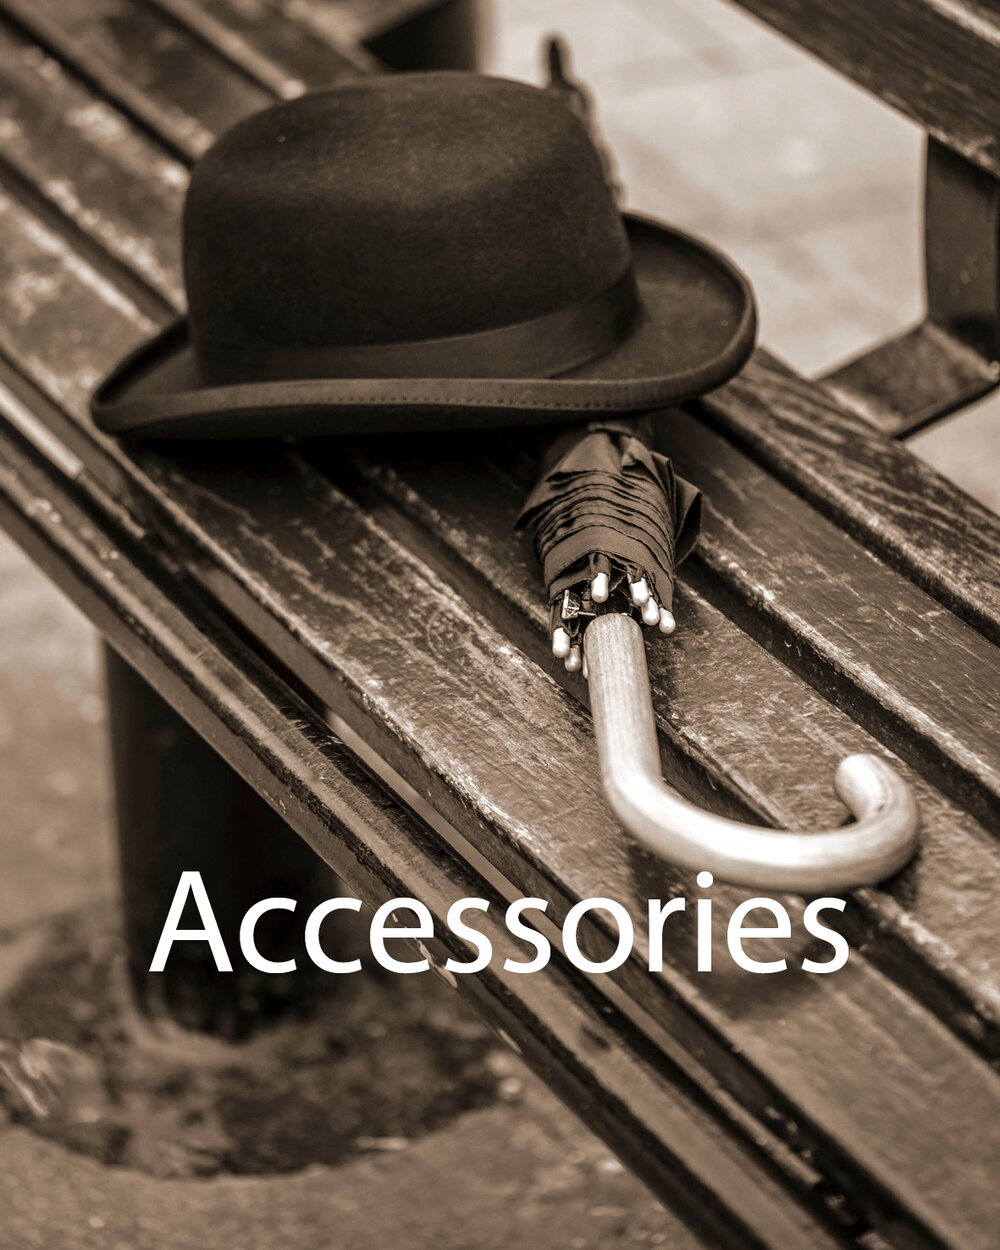 Image gate to Accessories page on Symonds of Hereford website